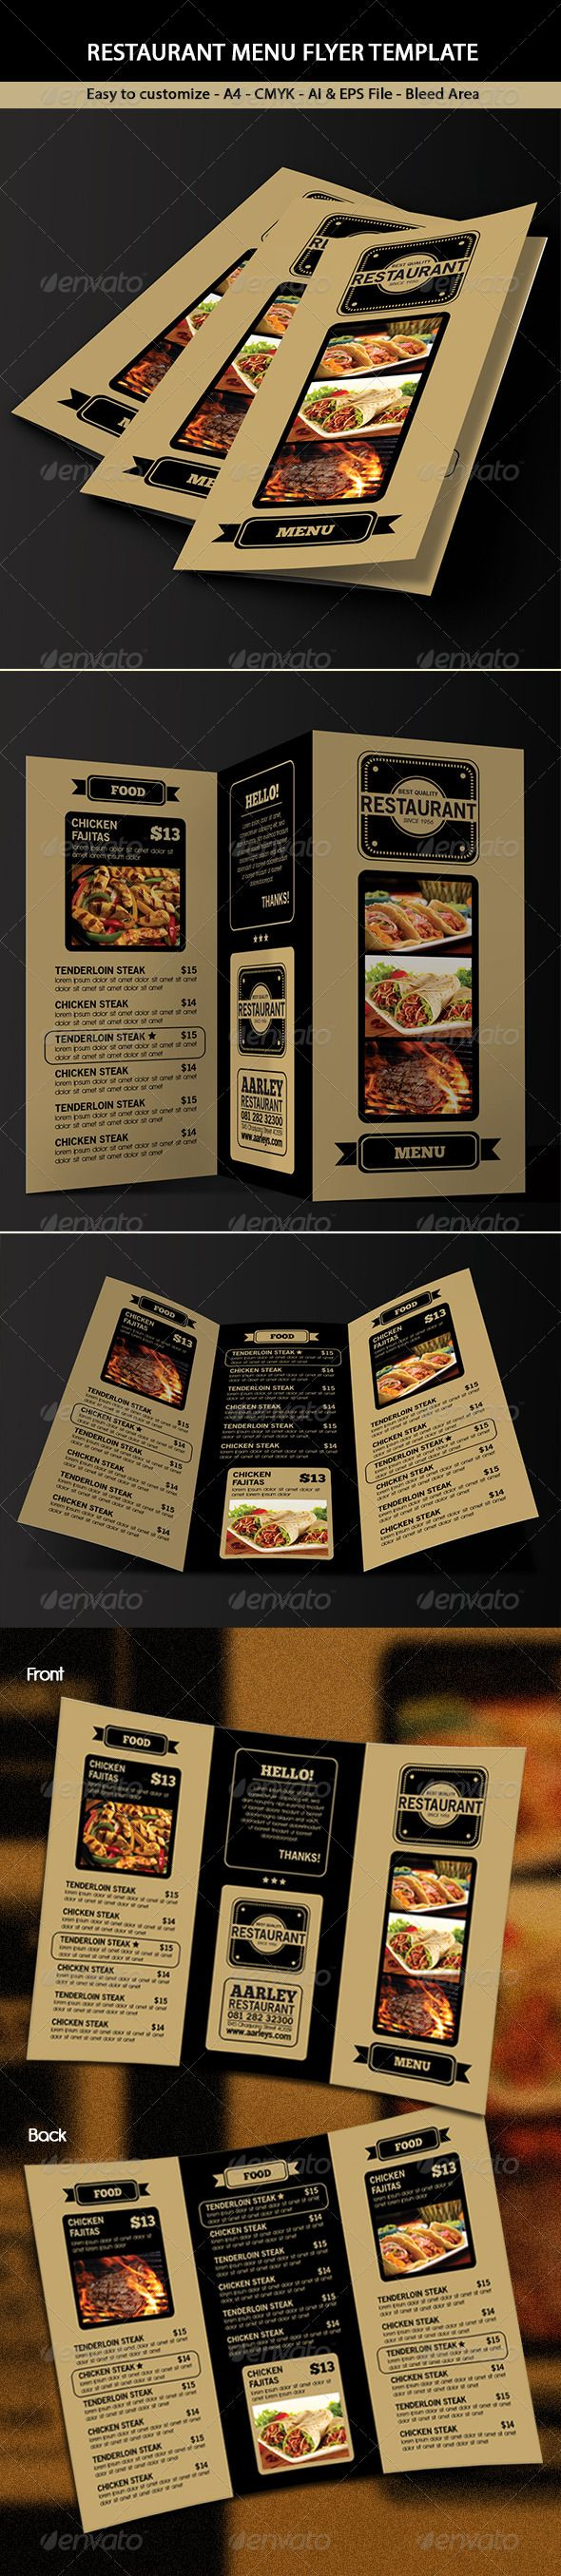 Trifold Restaurant Menu #GraphicRiver This Trifold Restaurant Menu Template can be used for Restaurant, Cafe, Coffee House, Steak House, etc File features 297×210mm A4 + 3mm Bleed CMYK Customizable Text Front & Back Vector AI & EPS File Font used : .dafont /antipasto.font .dafont /chunkfive-ex.font .dafont /old-sans-black.font *Product images are not included Thanks! Created: 29 November 13 Graphics Files Included: Vector EPS #AI Illustrator Layered: Yes Minimum Adobe CS Version: CS4 Print…